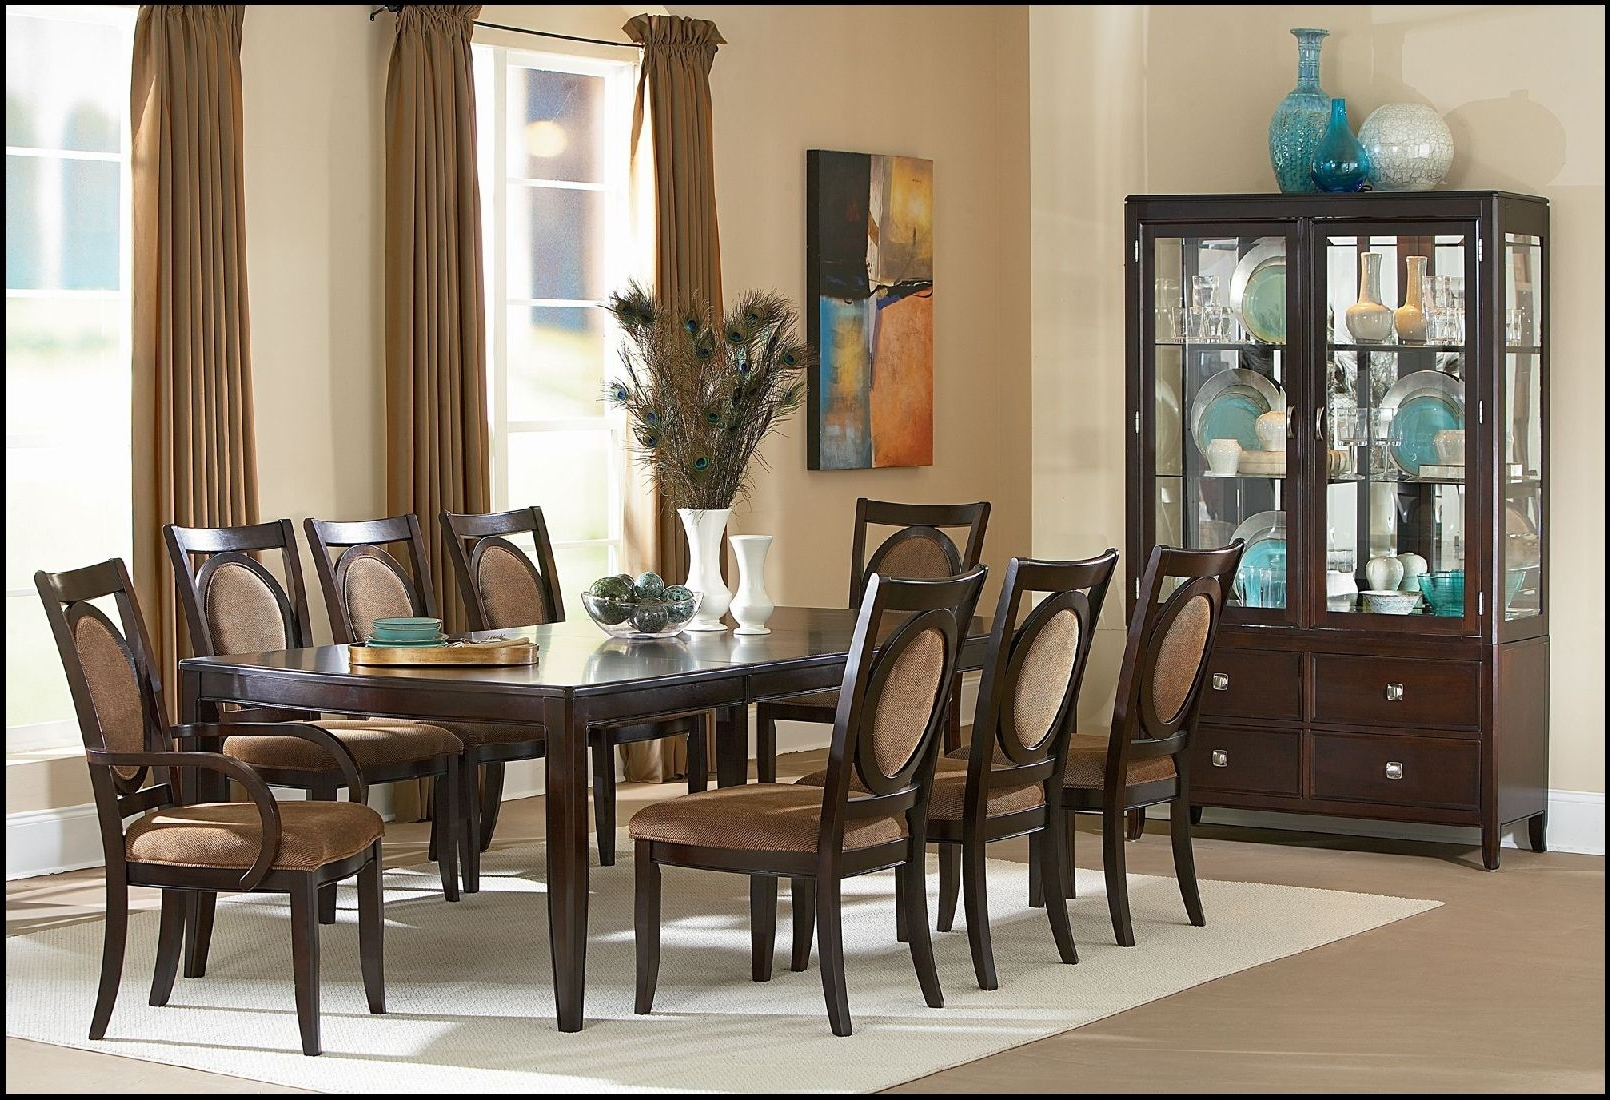 Sitiwhitegroook Regarding 8 Chairs Dining Tables (View 3 of 25)